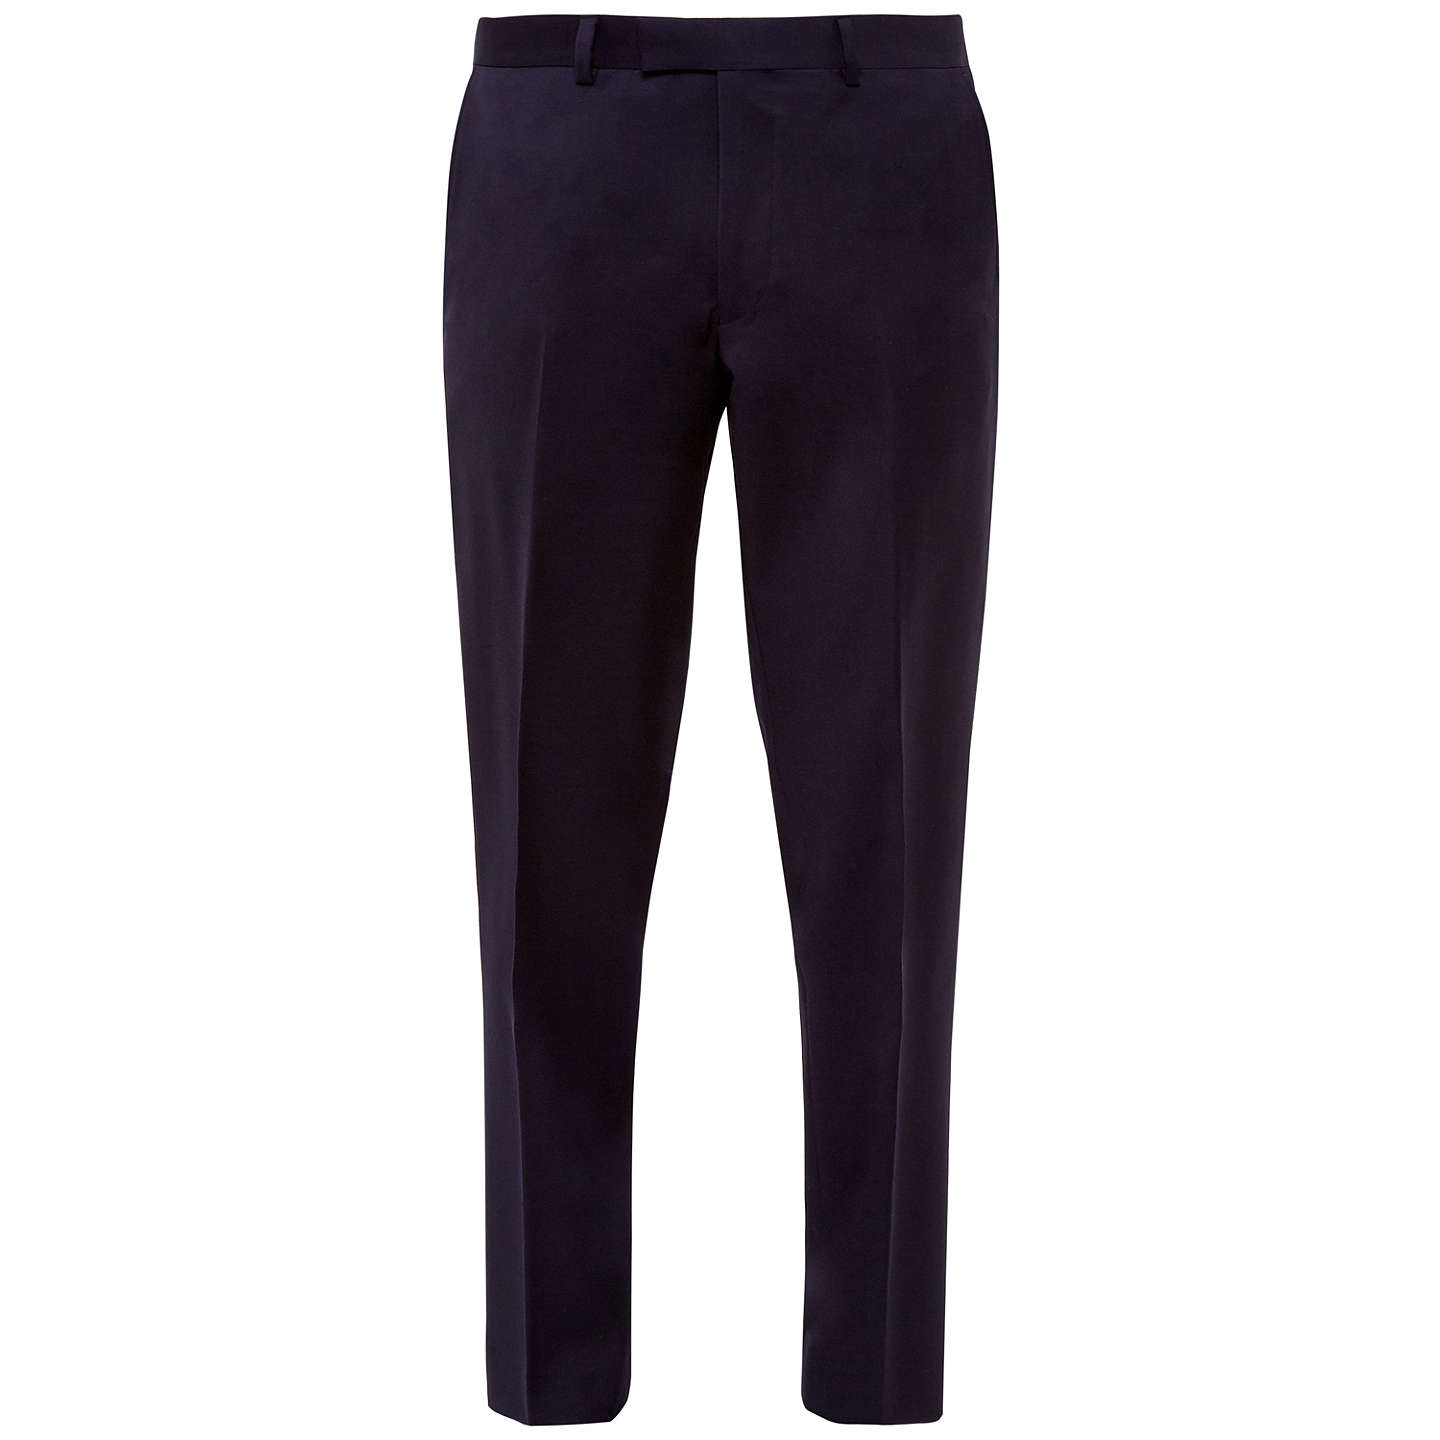 BuyTed Baker Cotlint Wool Tailored Fit Suit Trousers, Navy, 32S Online at johnlewis.com